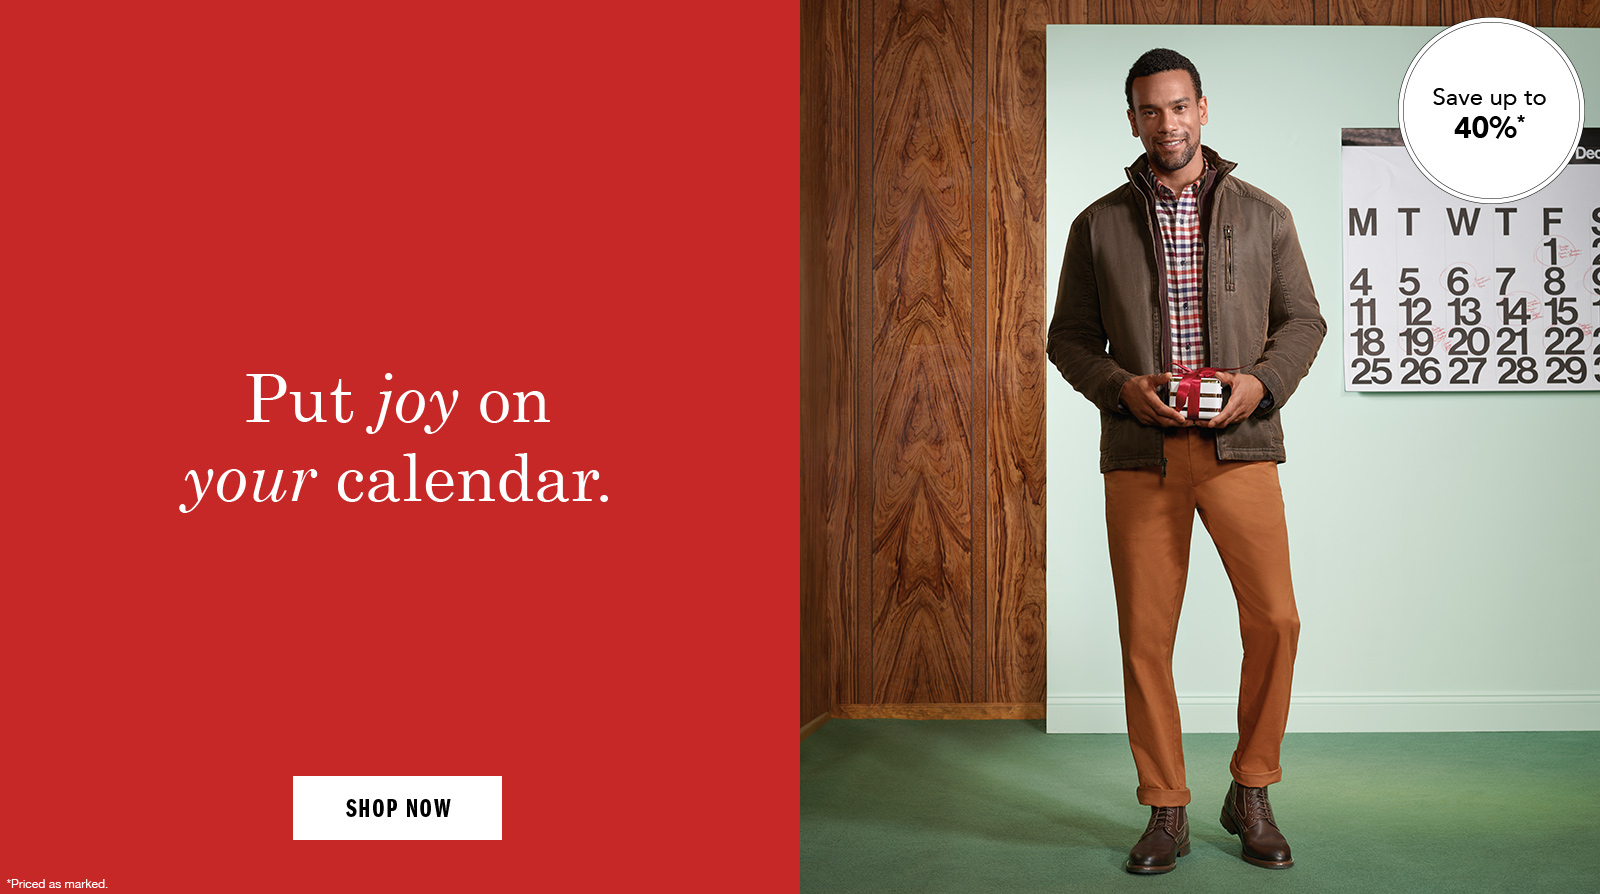 Put joy on your calendar - Shop Men's Boots and Apparel